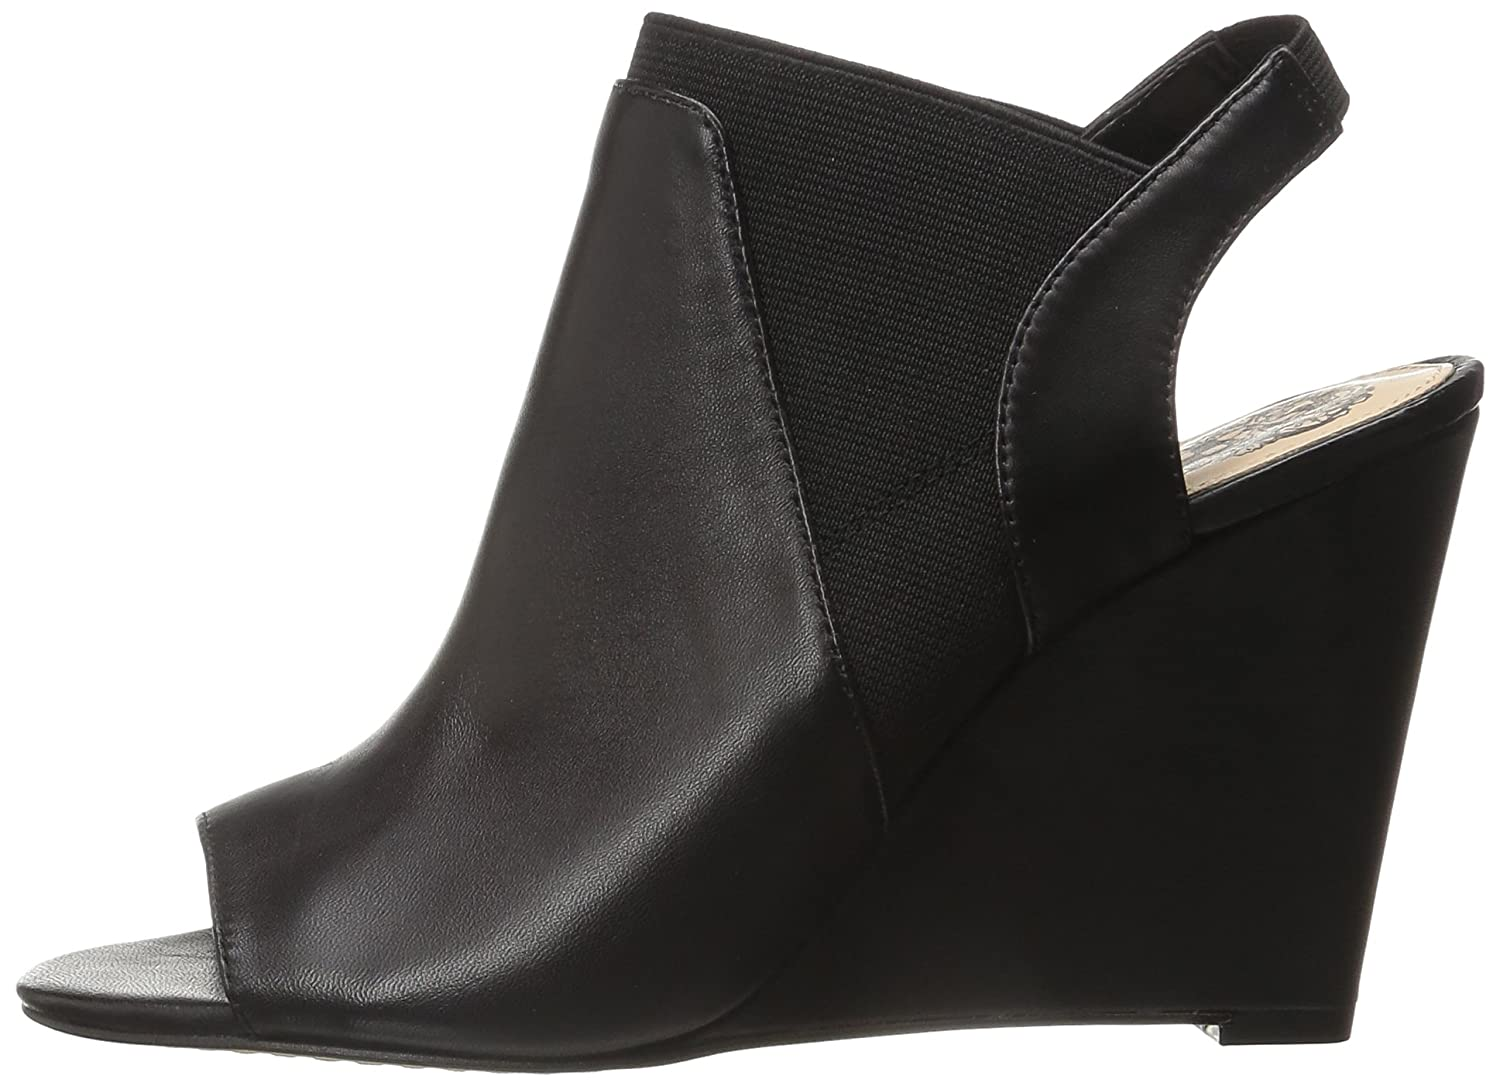 Vince Camuto Women's Xadrian Wedge Pump B01BGCC49U 8.5 B(M) US|Black